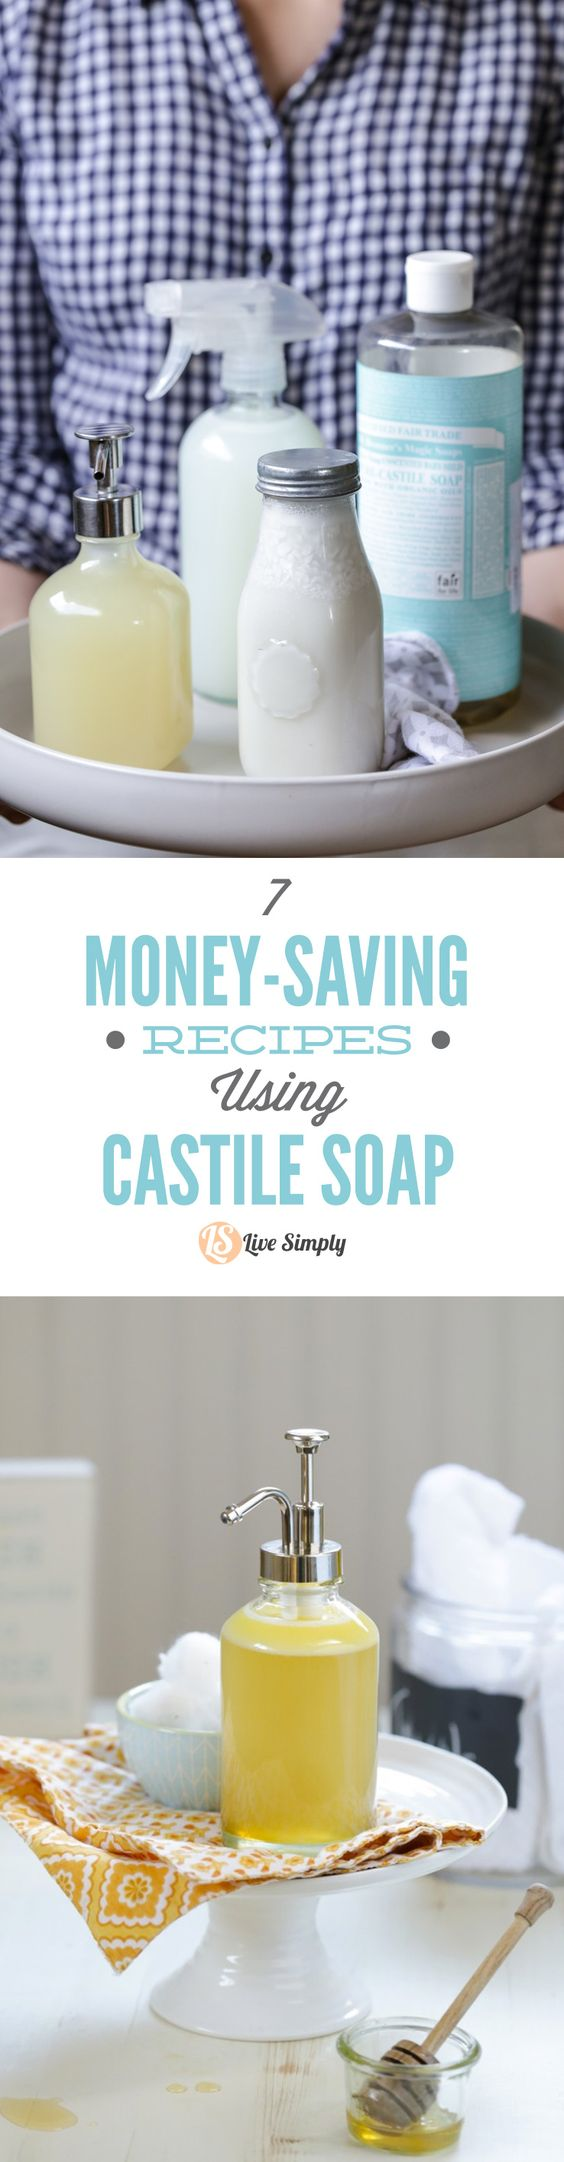 7 Money-Saving Recipes Using Castile Soap! So many amazing, natural uses for castile soap. I love the bathroom cleaner, face wash, and hand soap. So many more you can make with just one 32-ounce bottle of castile soap. http://livesimply.me/2015/04/13/7-money-saving-recipes-using-castile-soap/